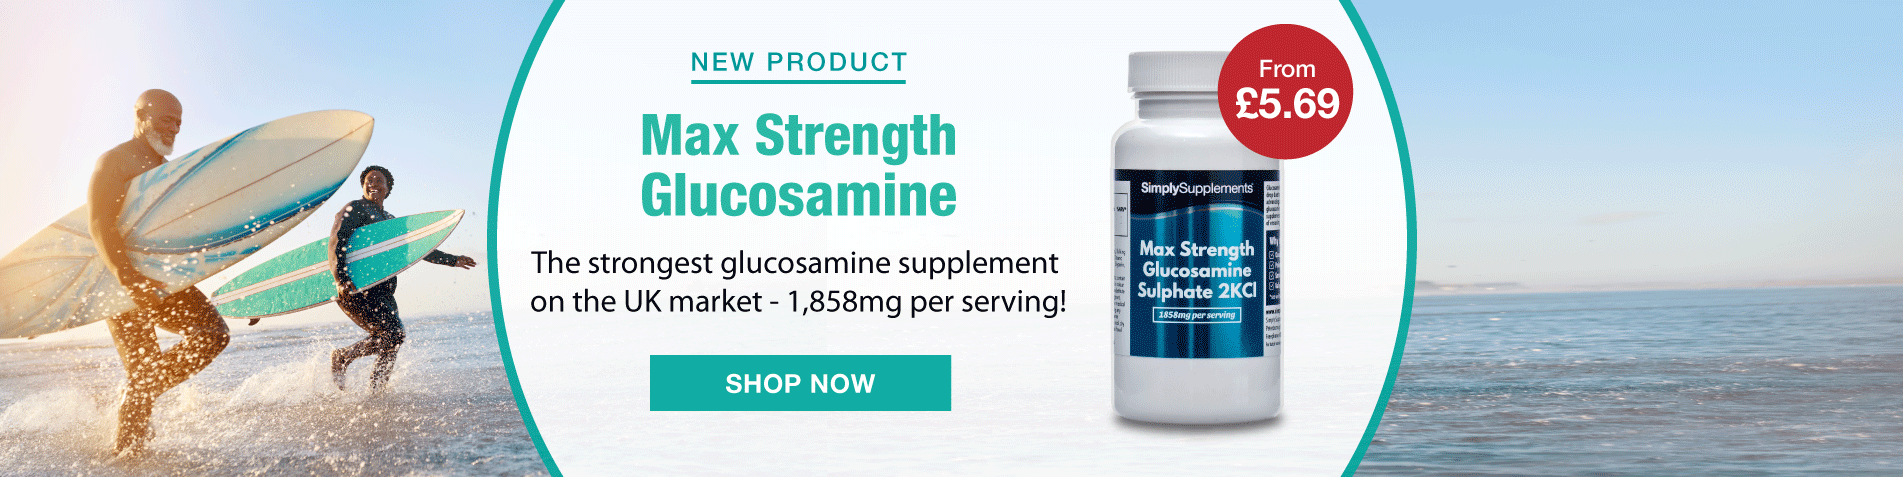 New - Max Strength Glucosamine